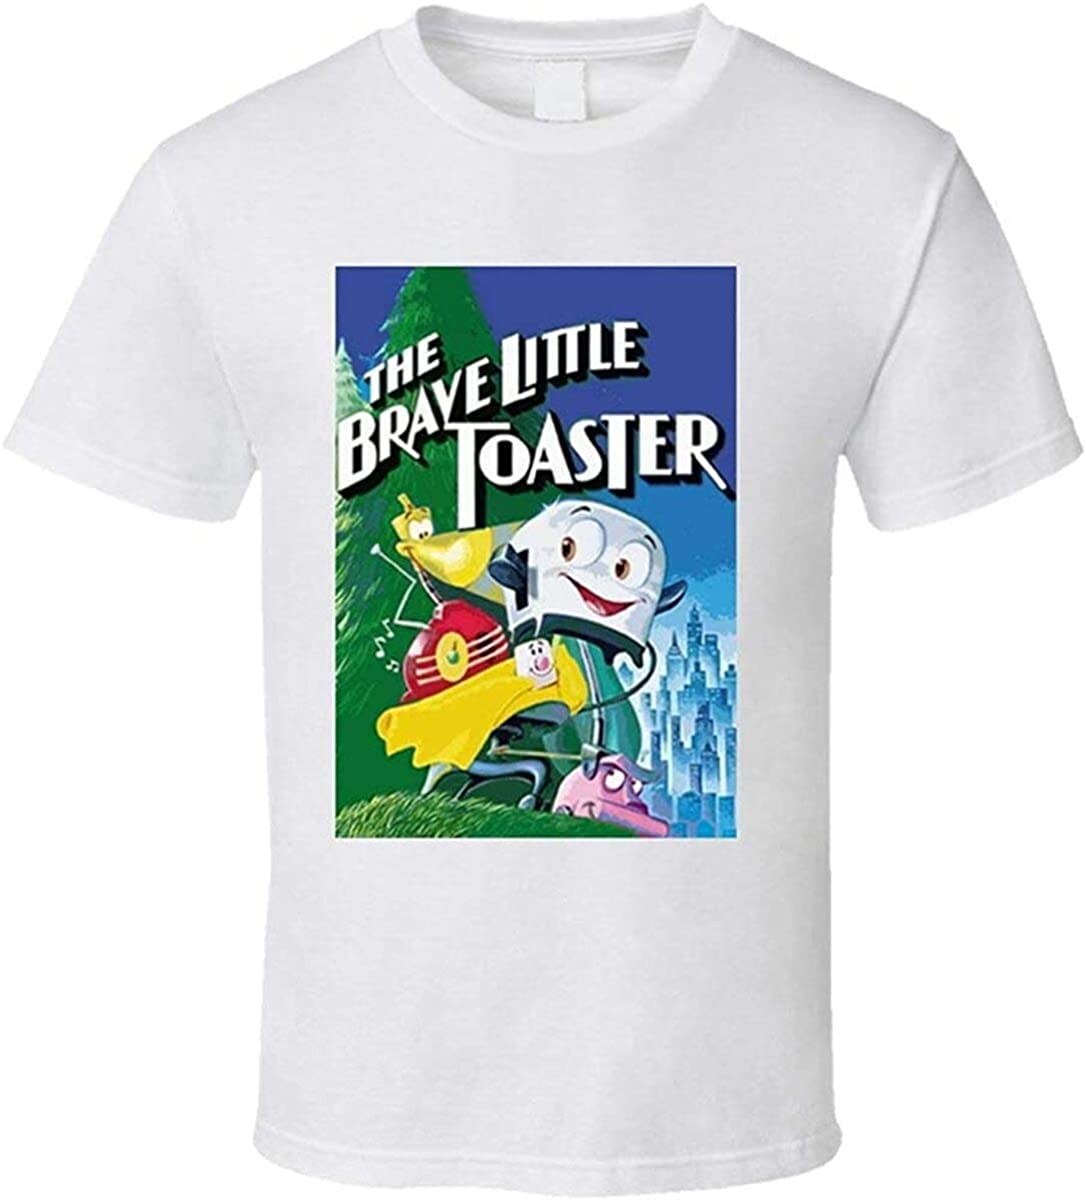 Gearsly Ringyu The Brave Little Toaster Cartoon Movie T Shirt Unisex T-Shirt for Men Women